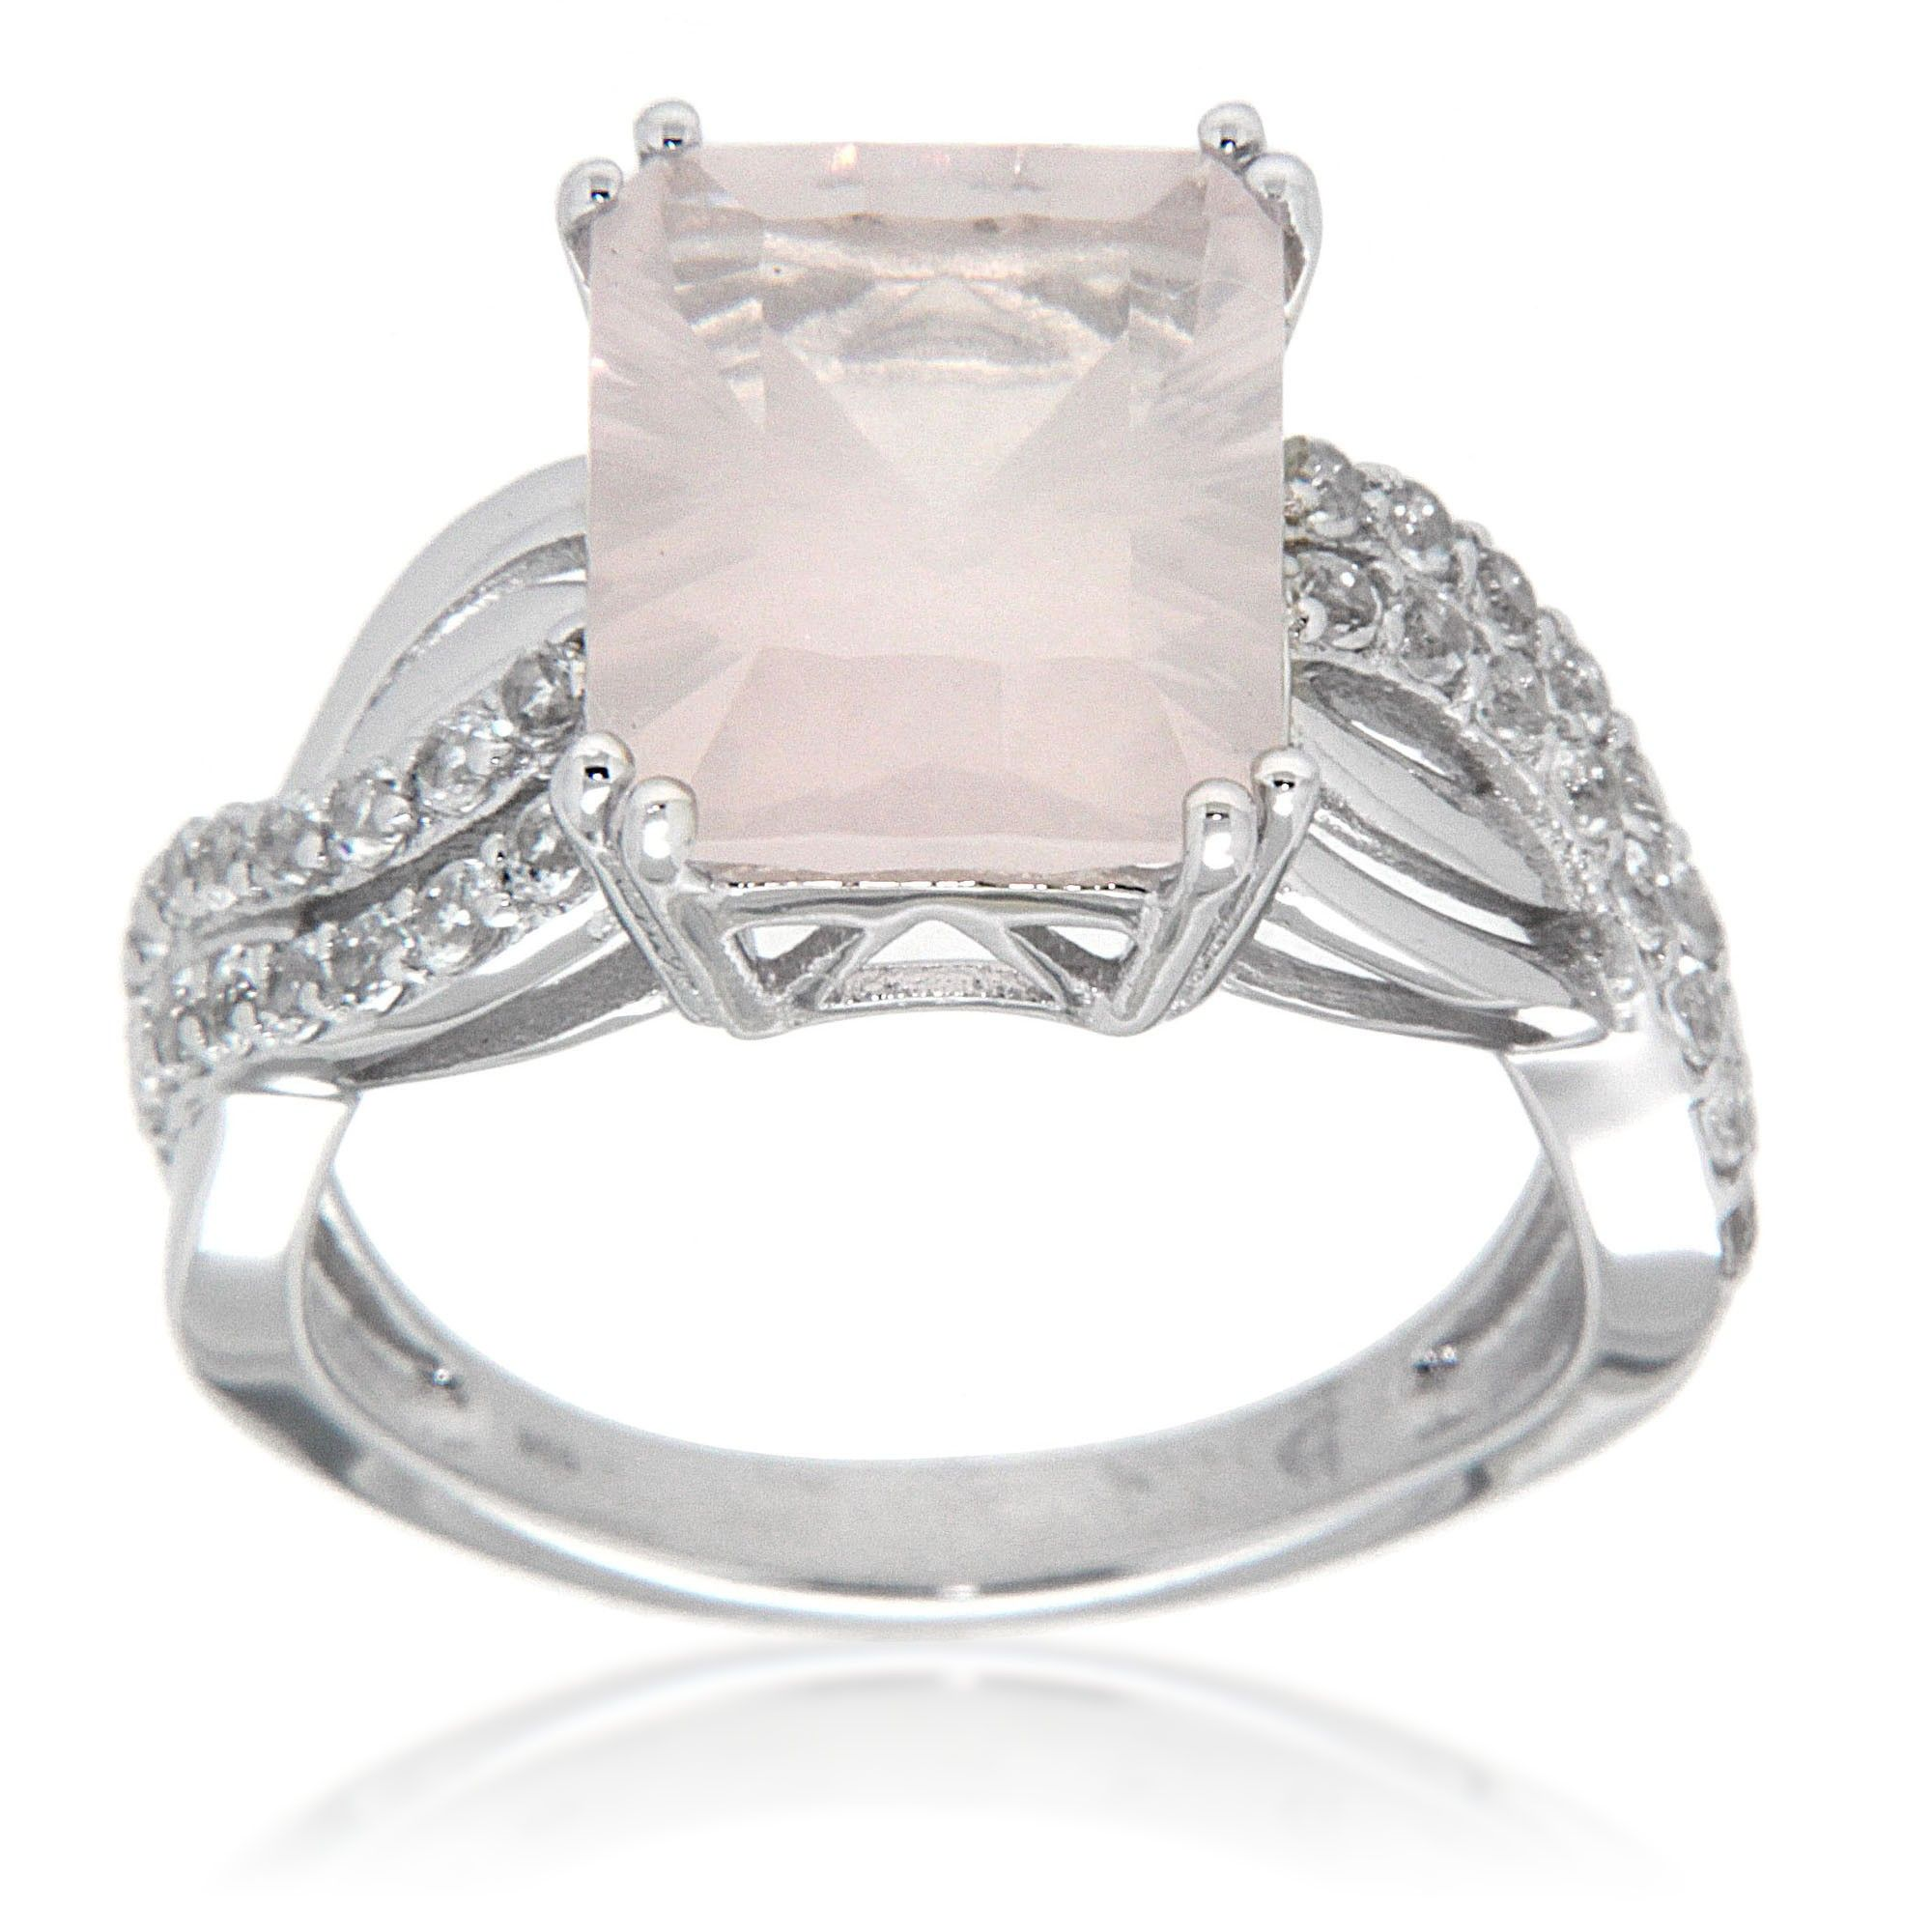 Bliss Collection Rose Quartz and White Topaz Sterling Silver Fashion Ring